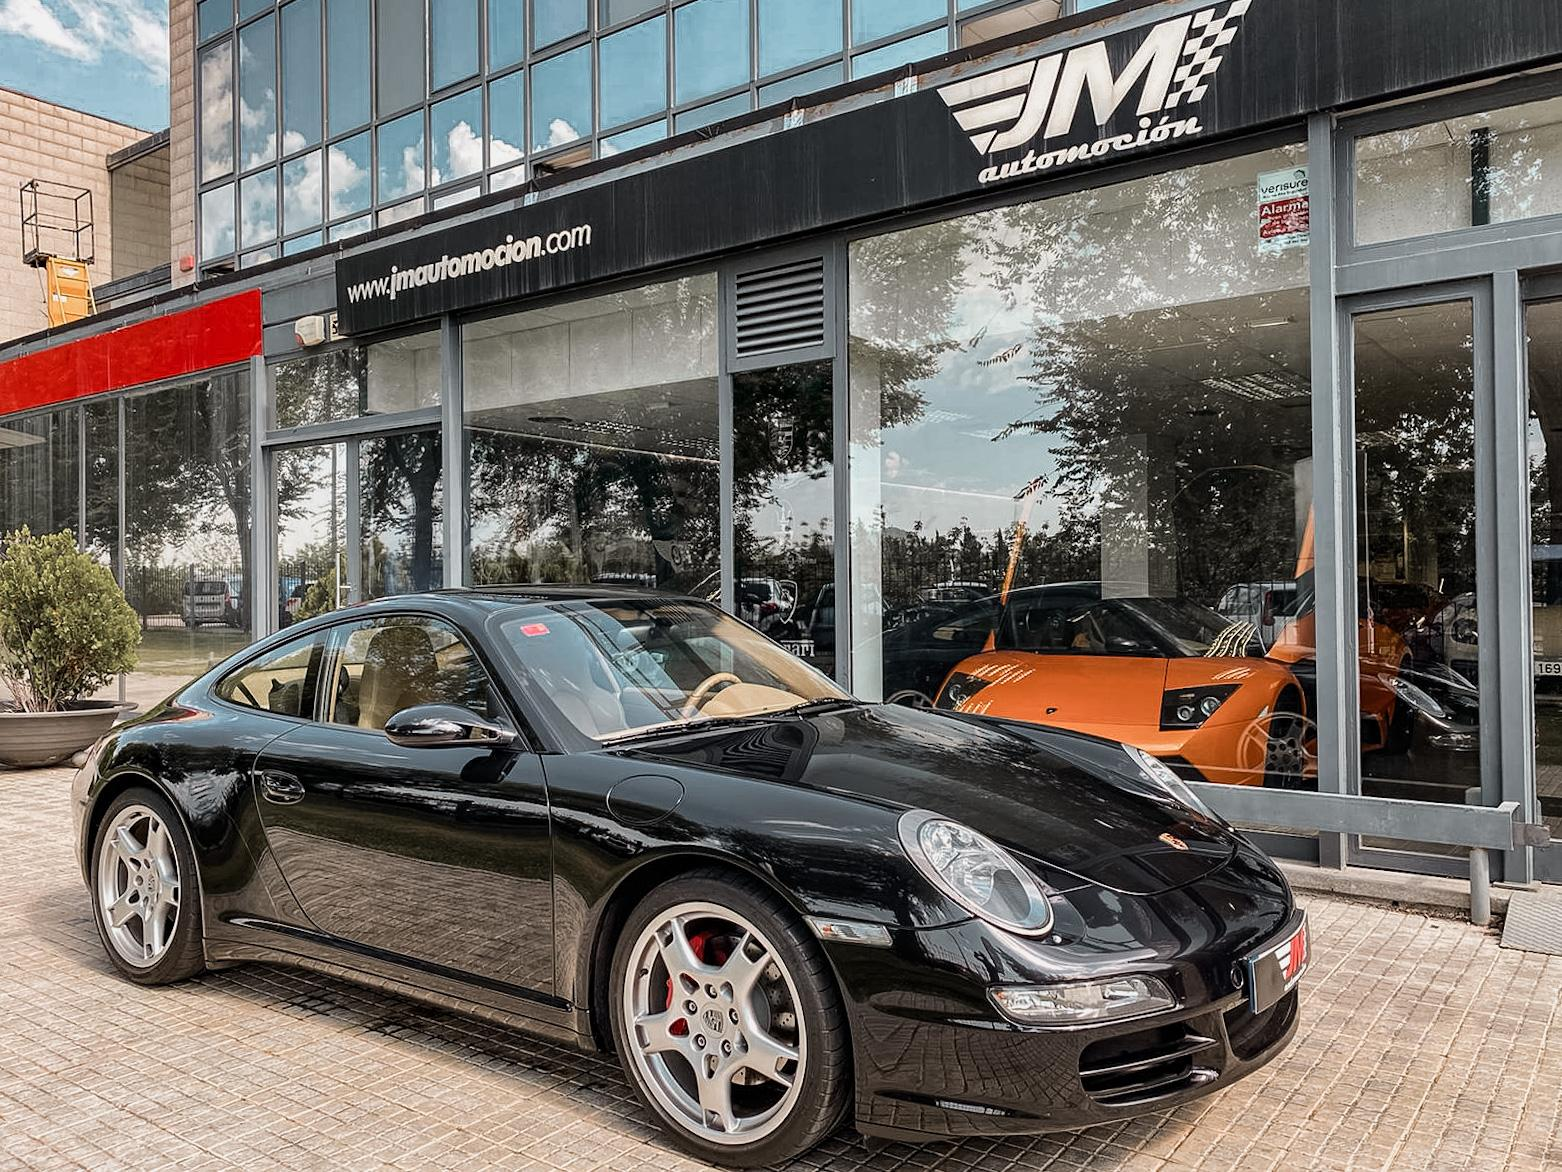 PORSCHE 997 CARRERA 4S -MANUAL, IMPECABLE ESTADO-